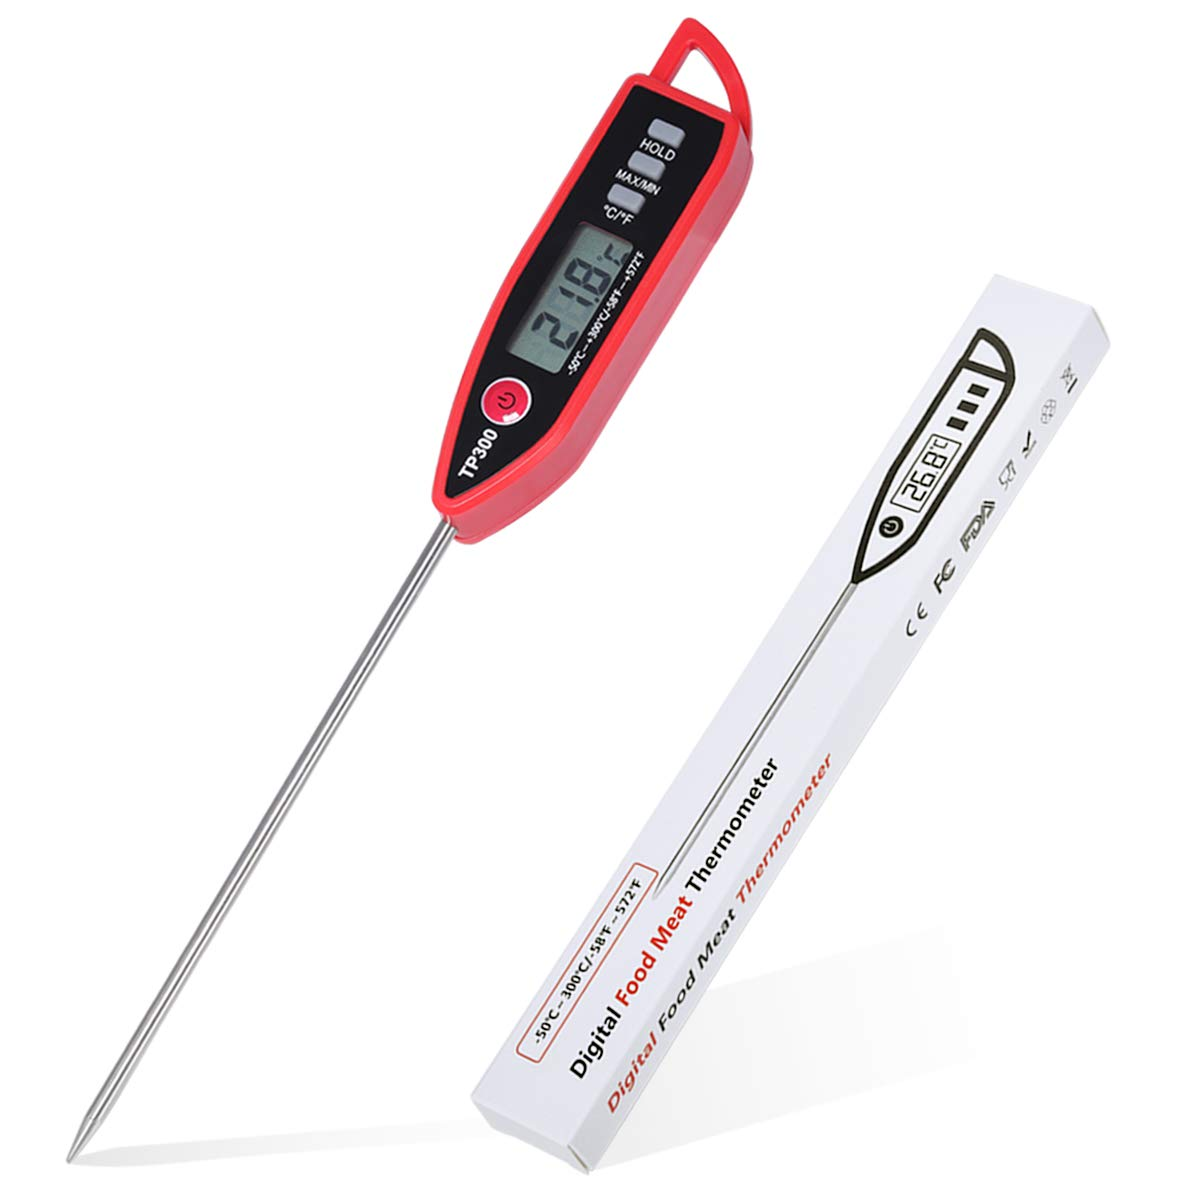 Cyxnslh Instant Read Meat Thermometer, Fast & Precise Digital Food Thermometer, Digital Thermometer for Kitchen, and Grill, Outdoor Cooking, Electronic Cooking Kitchen Thermometer with LCD Display